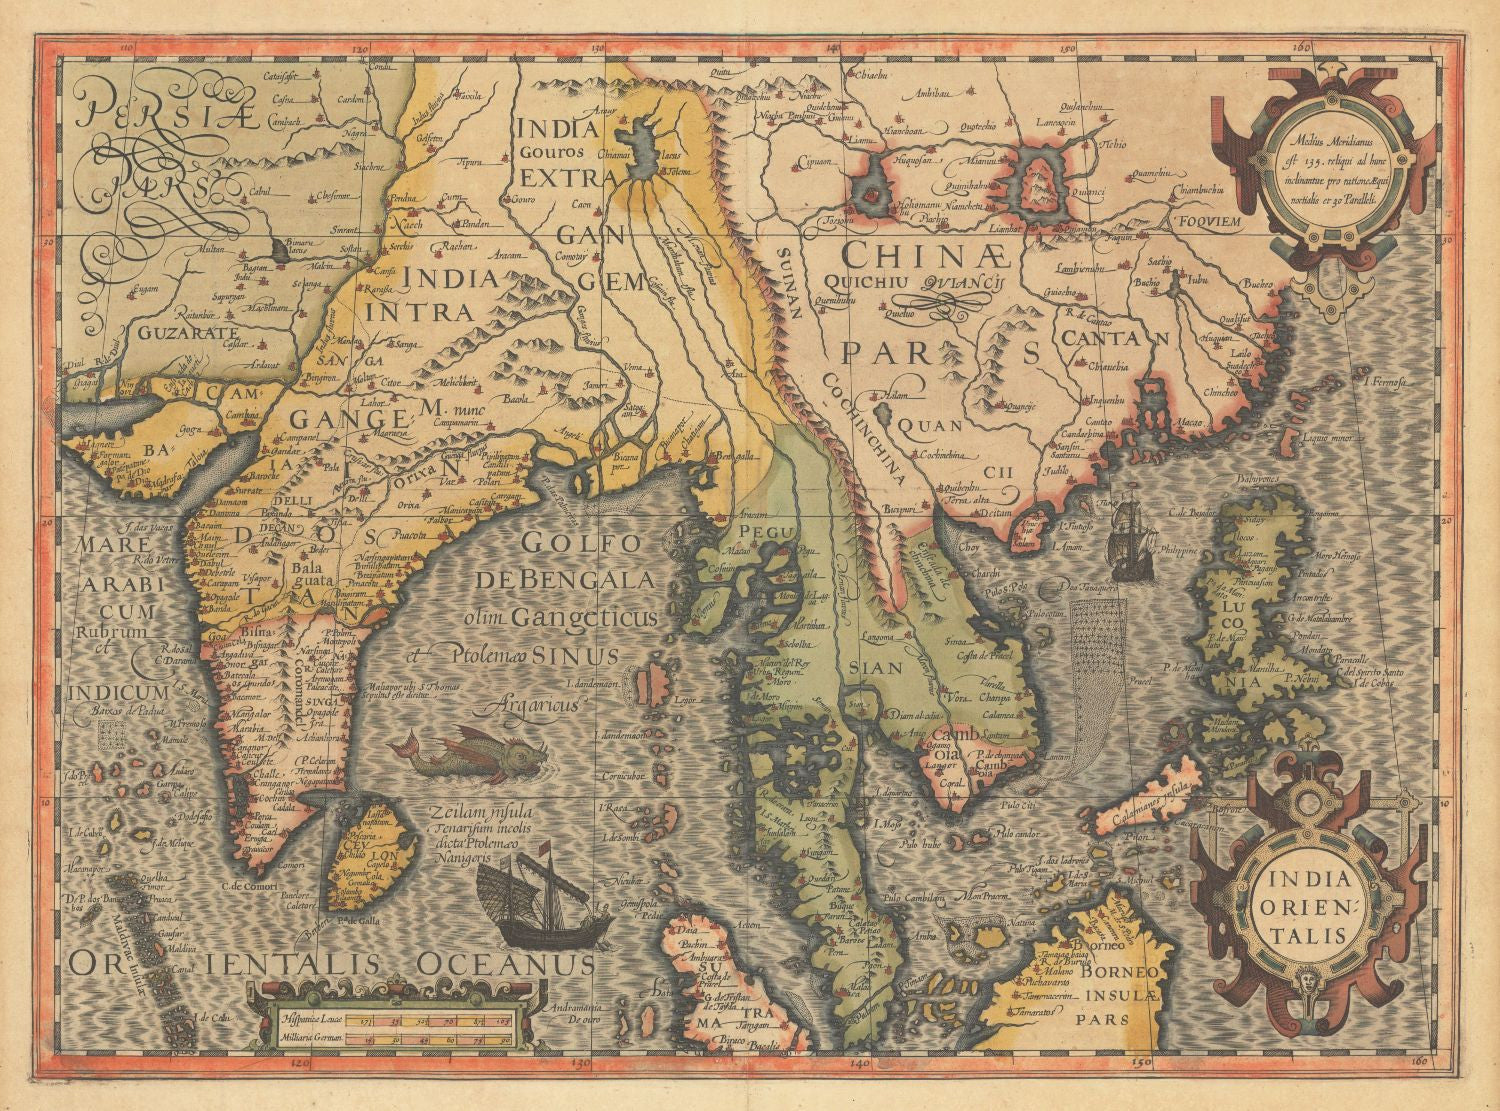 Decorative vintage world map india orientalis jodocus hondius decorative vintage world map india orientalis jodocus hondius 1606 posters gumiabroncs Images